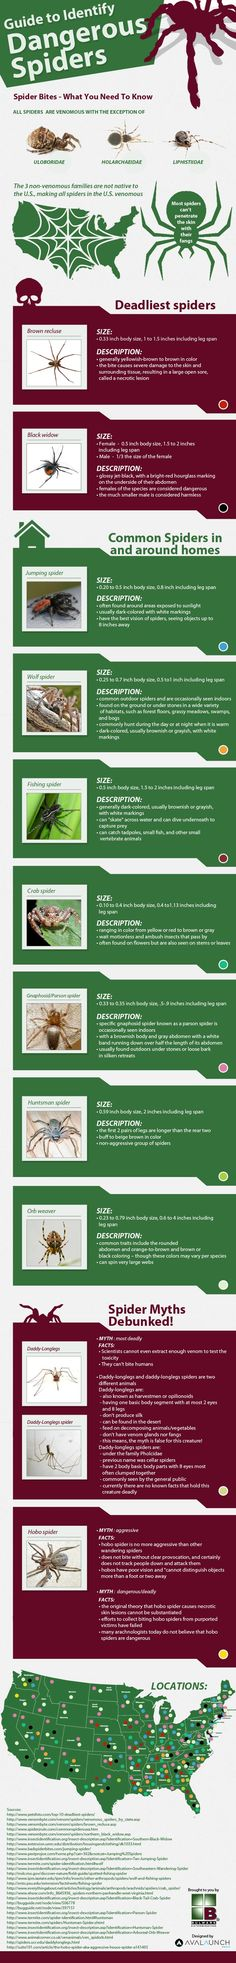 Guide to identify dangerous spiders